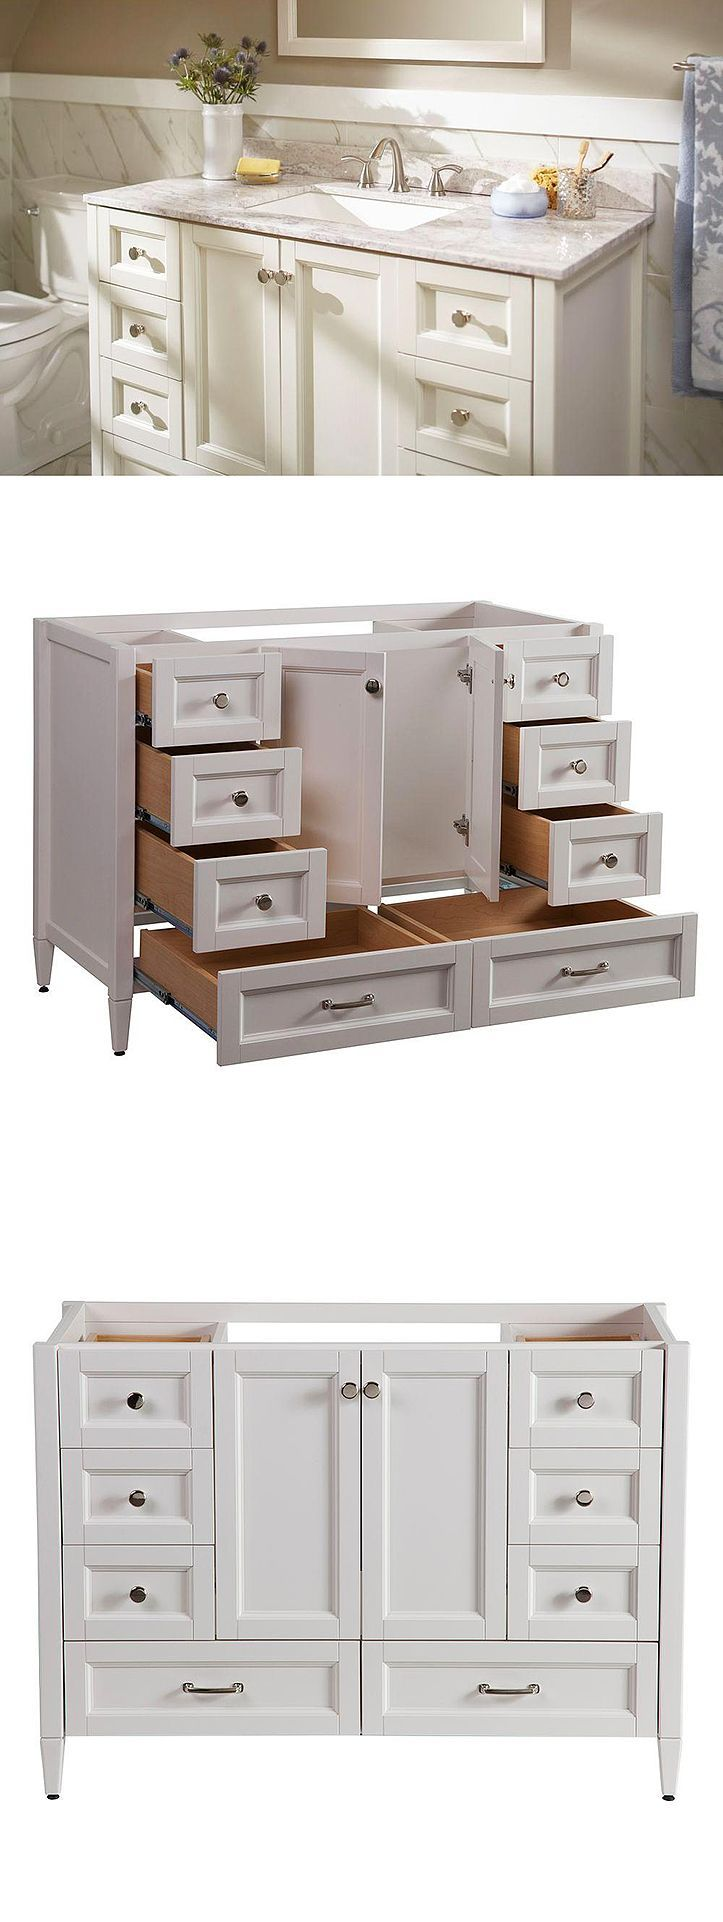 Look at all the storage this bathroom vanity provides. The Claxby features six working drawers and two large bottom drawers that provide ample storage for all of your bath essentials. It's finished in a beautiful cream color and accented with chrome cabinet hardware for an elegant look. #bathroomvanities